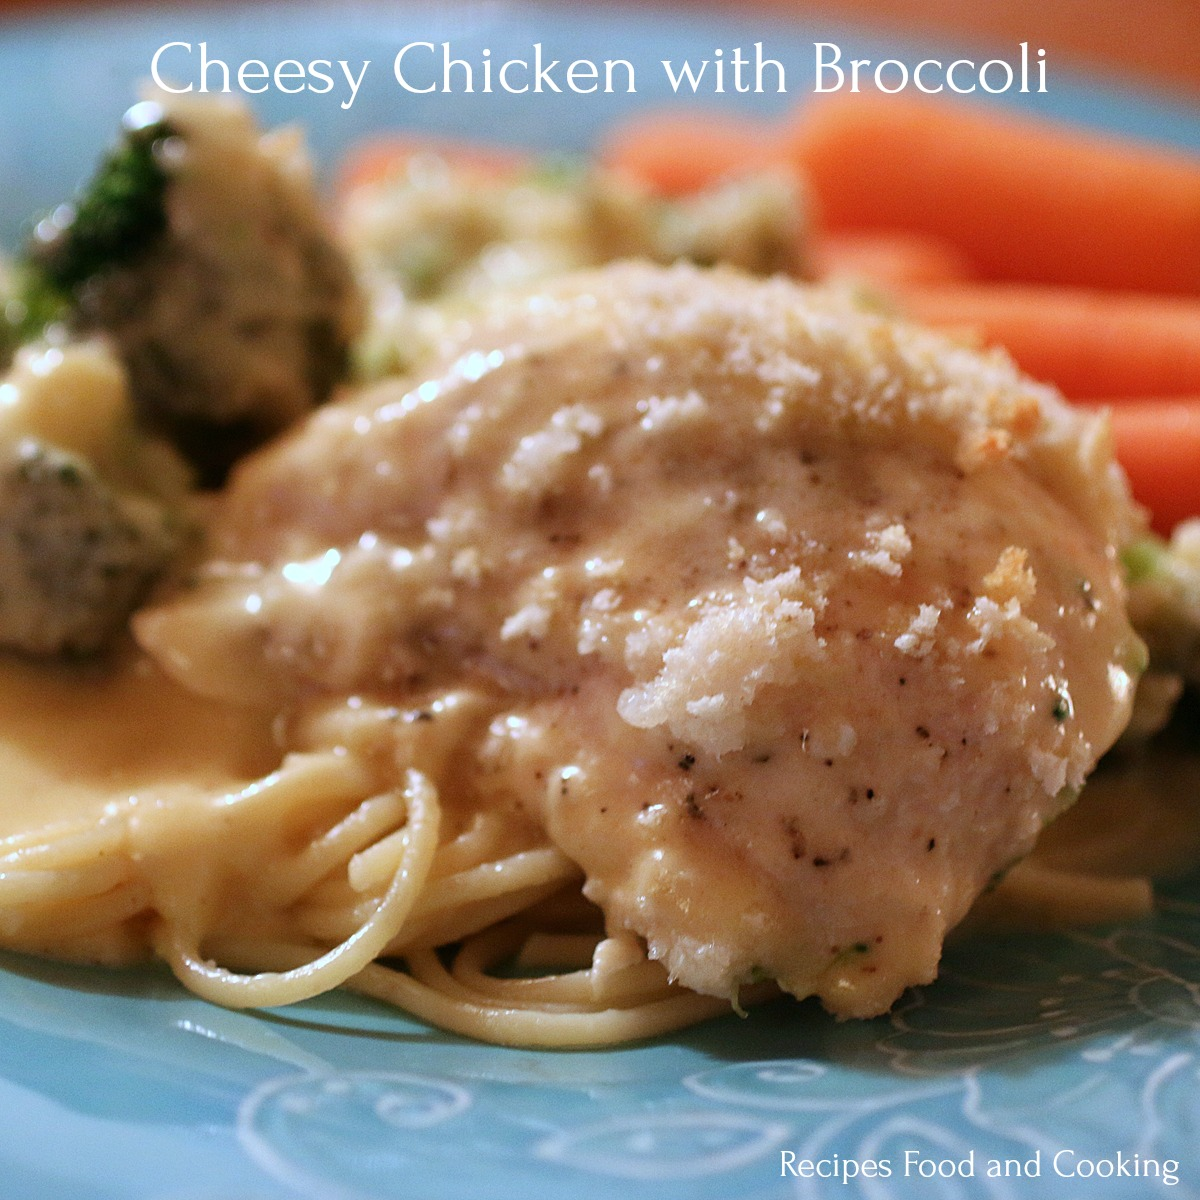 Cheesy Chicken with Broccoli